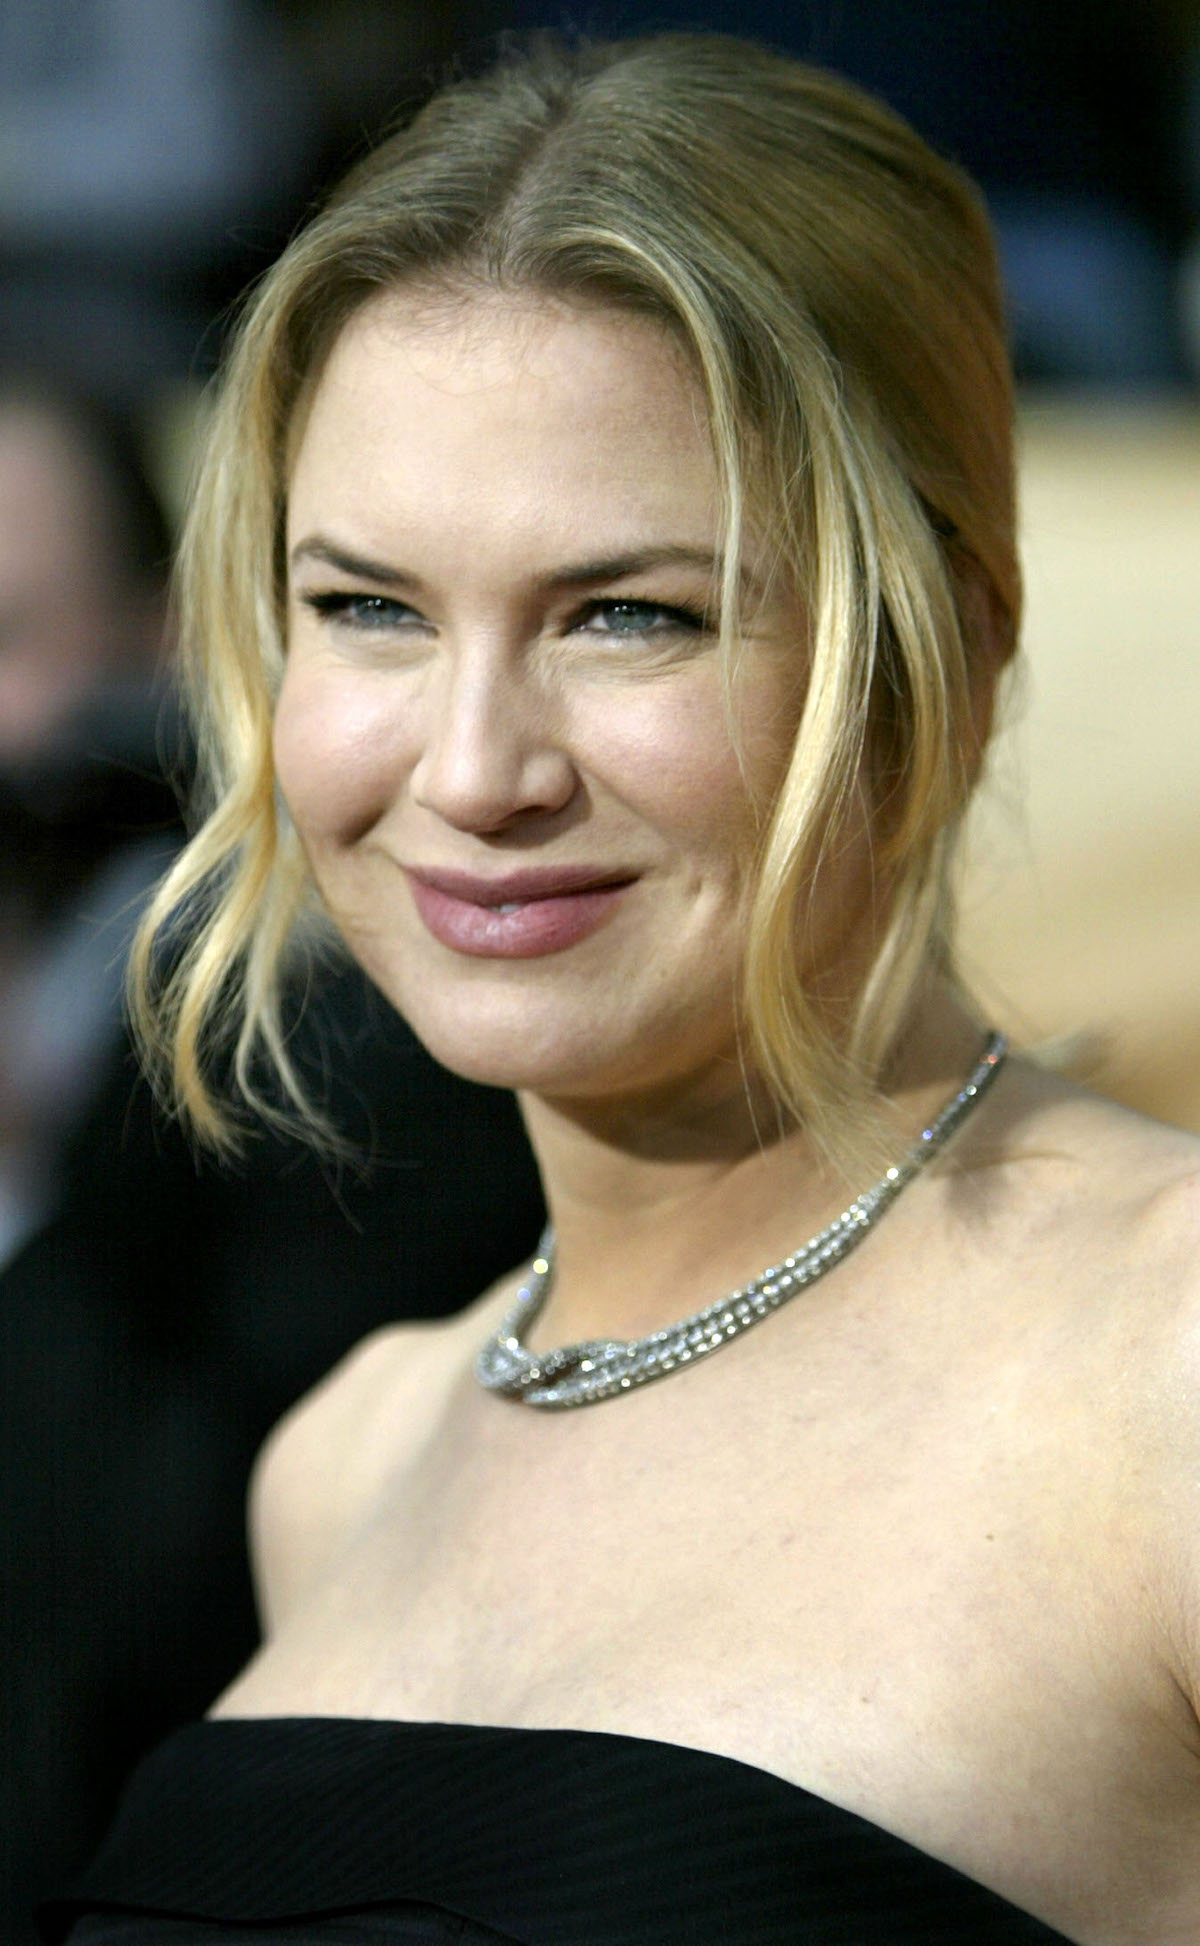 Actress Renee Zellwegger, a nominee for supporing actress in a motion picture, arrives for the 10th annual Screen Actors Guild Awards at the Shrine Auditorium in Los Angeles, February 22, 2004. Reuters/ Lucy Nicholson